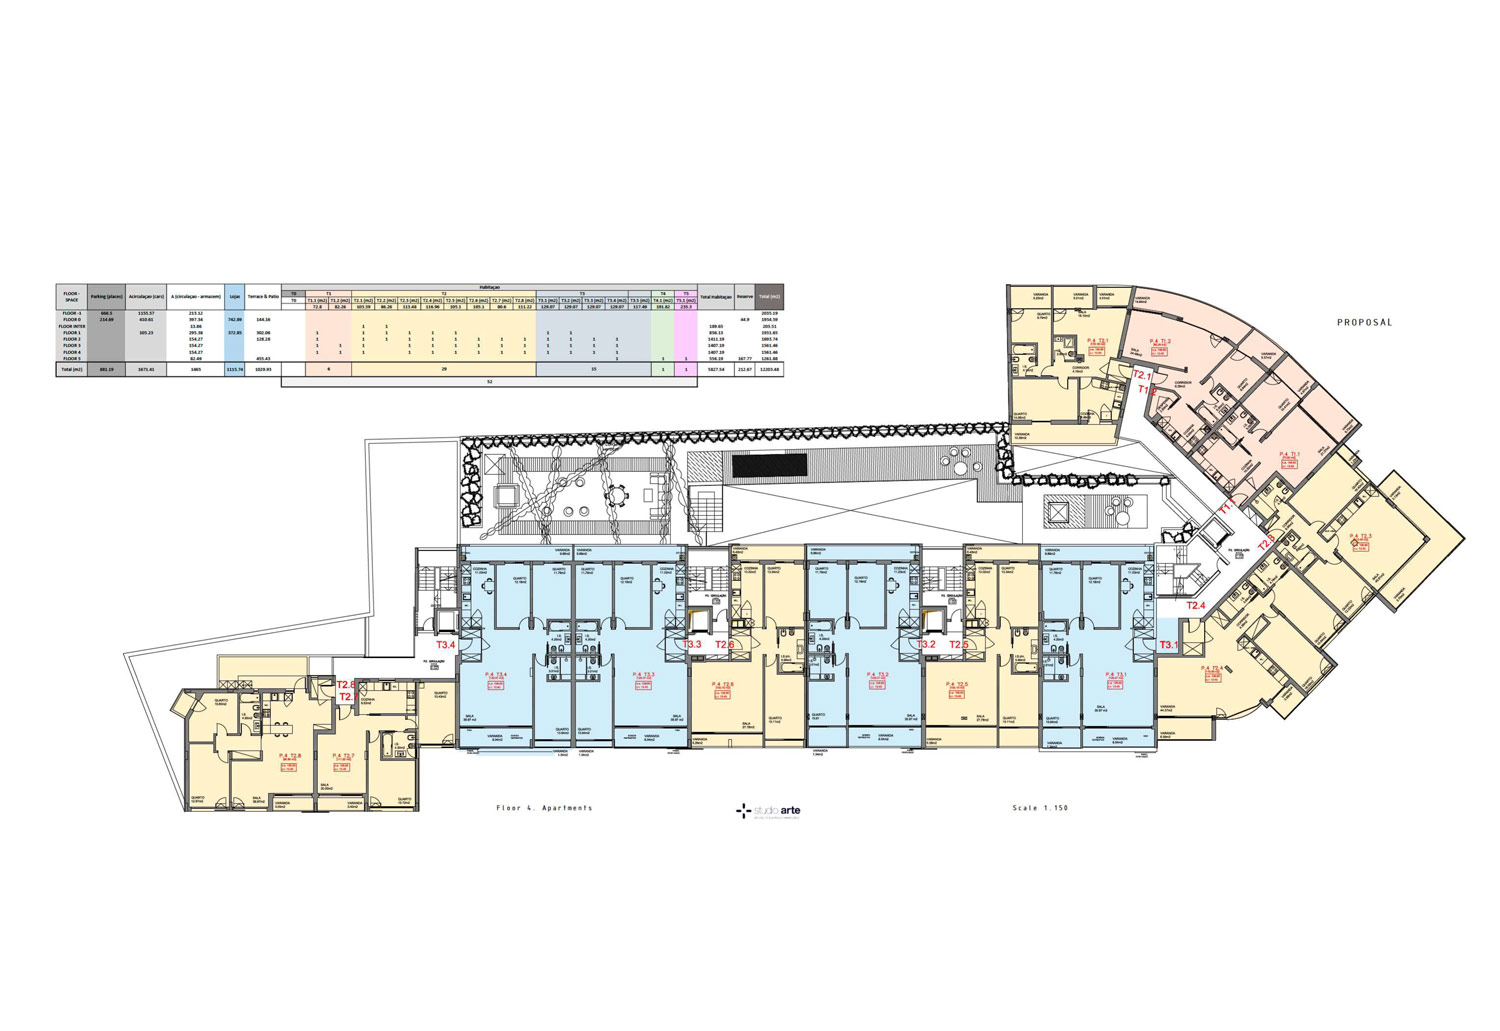 atrium lagoa house plans image